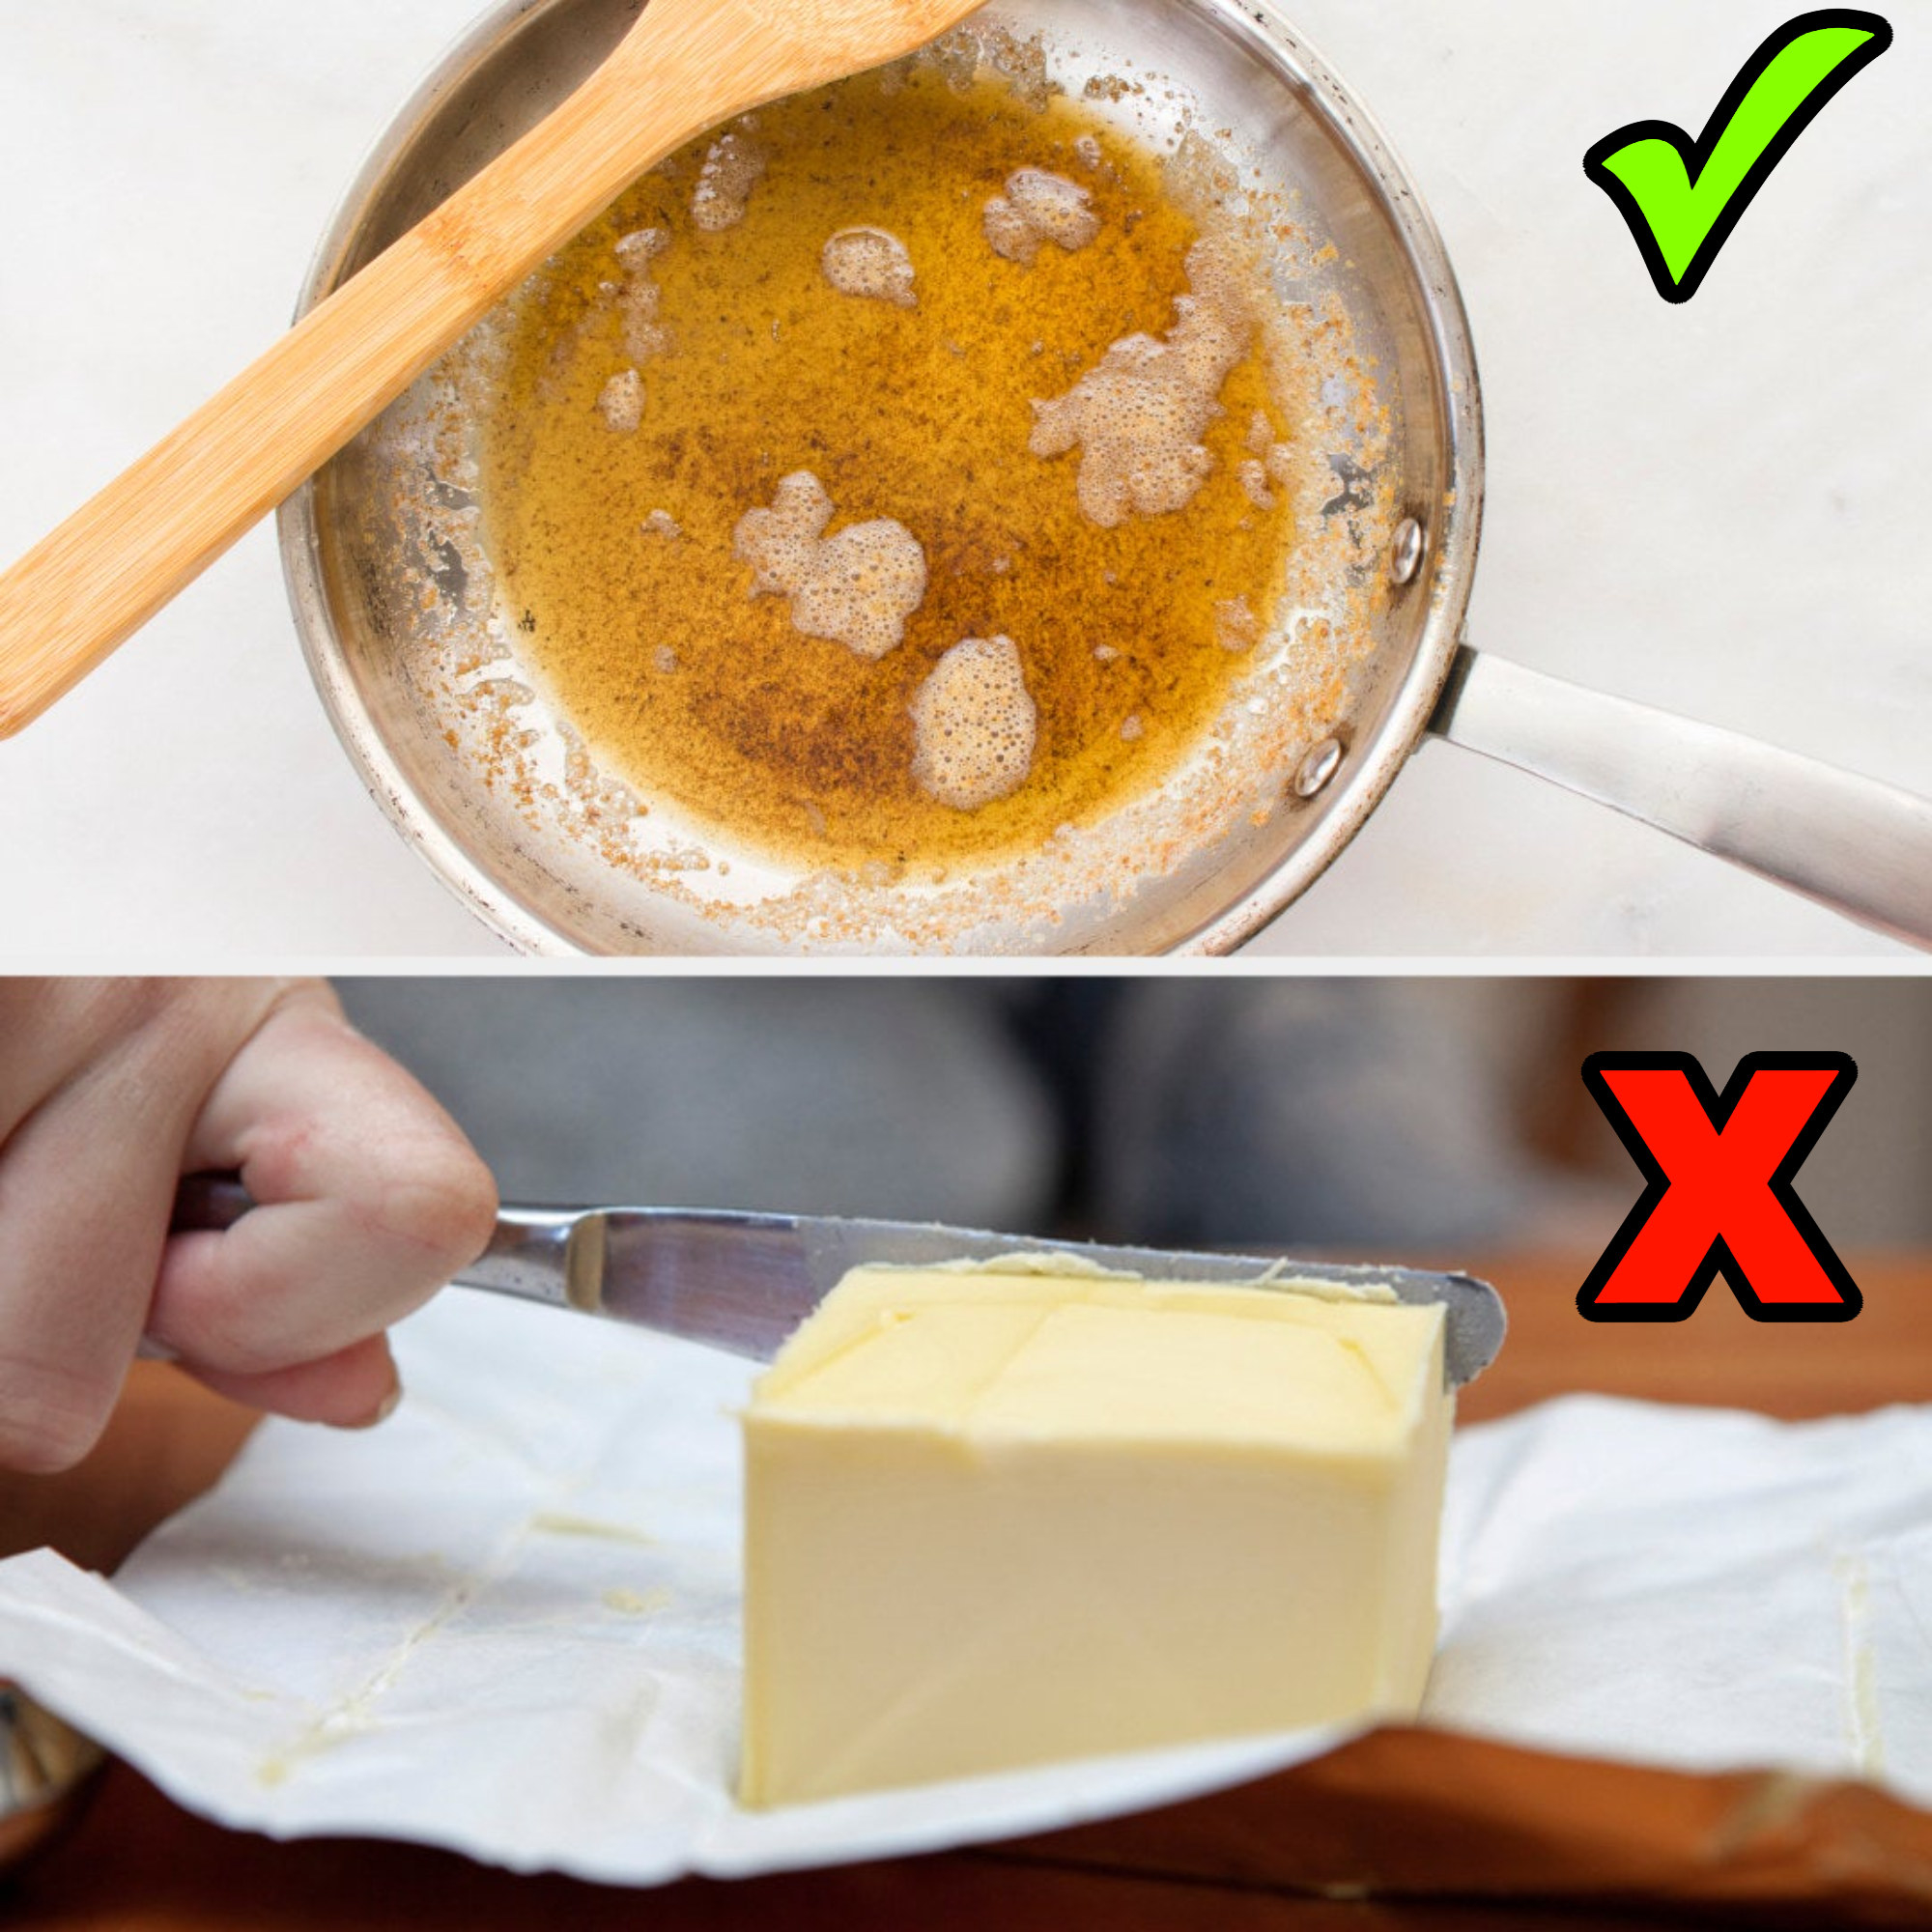 A pot of browned butter and a thick slab of regular butter being cut with a knife